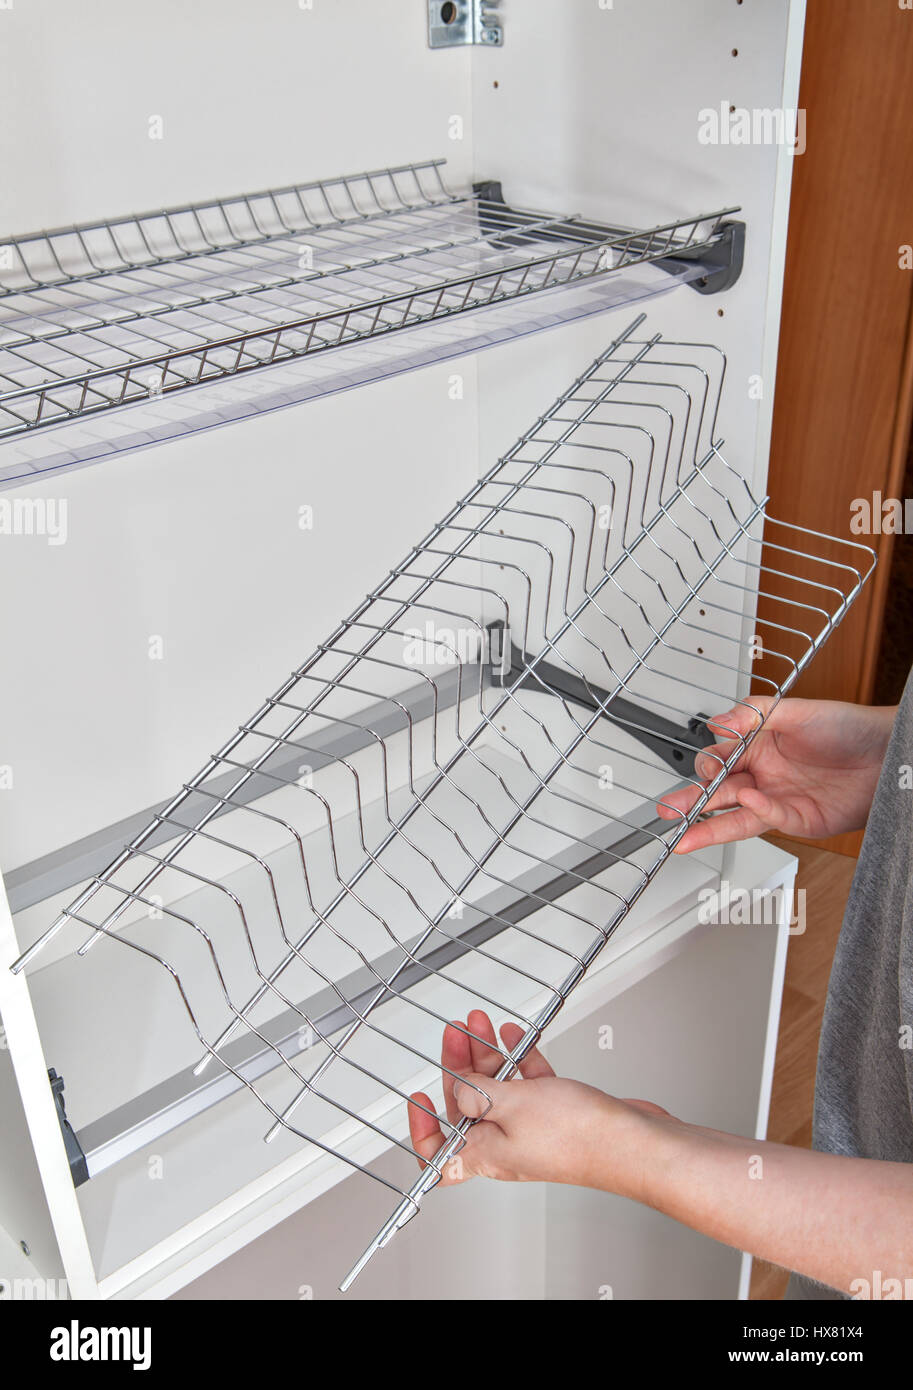 Superieur Install Wall Mounted Shelf Under Kitchen Cabinet With Inside Dish Rack With Drip  Tray, Close Up Of A Woman Hands Holds Wire Part.